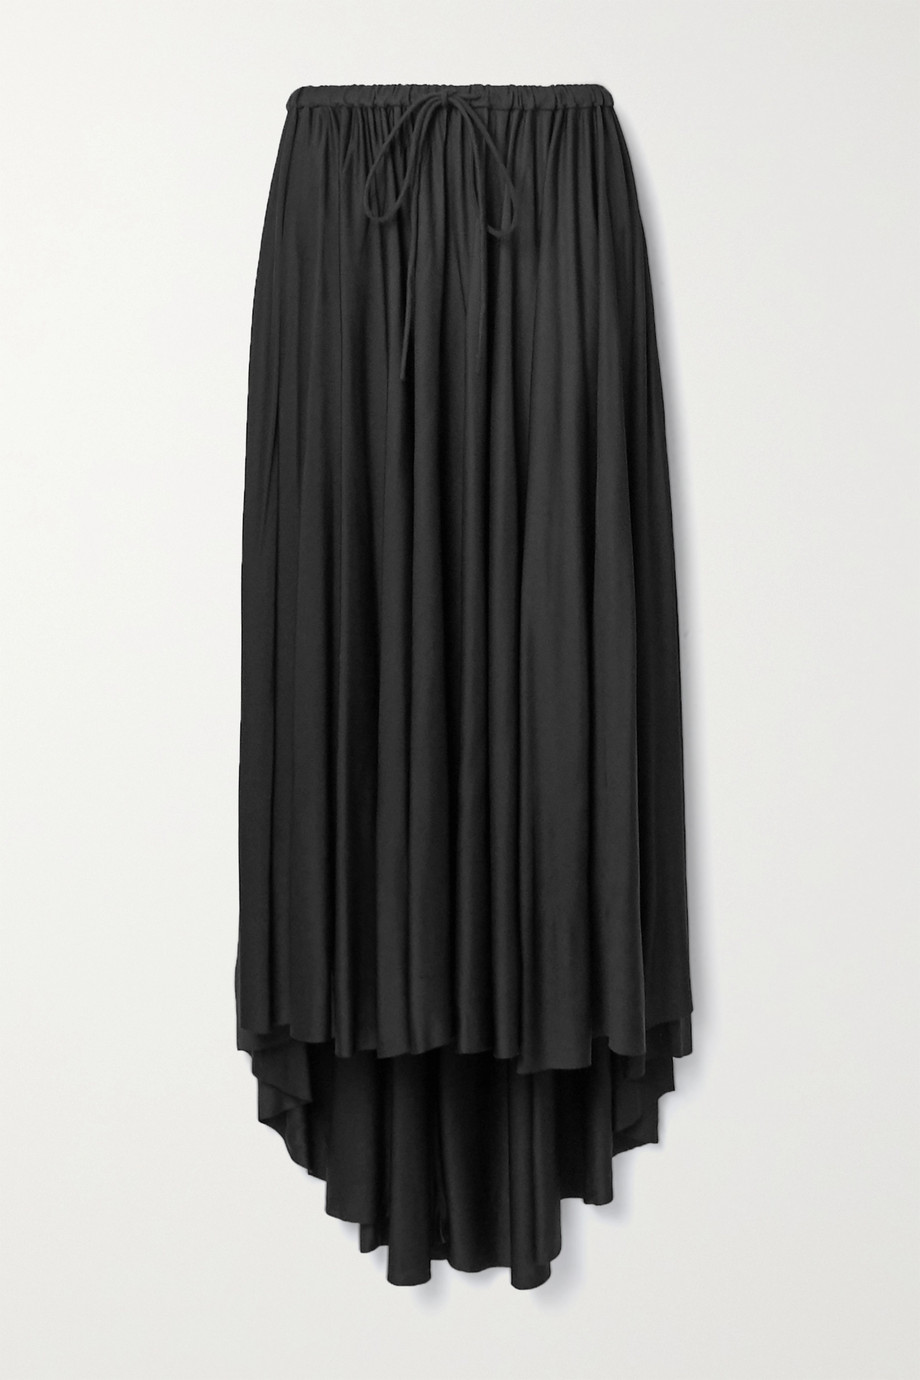 Proenza Schouler White Label Asymmetric gathered satin-jersey midi skirt